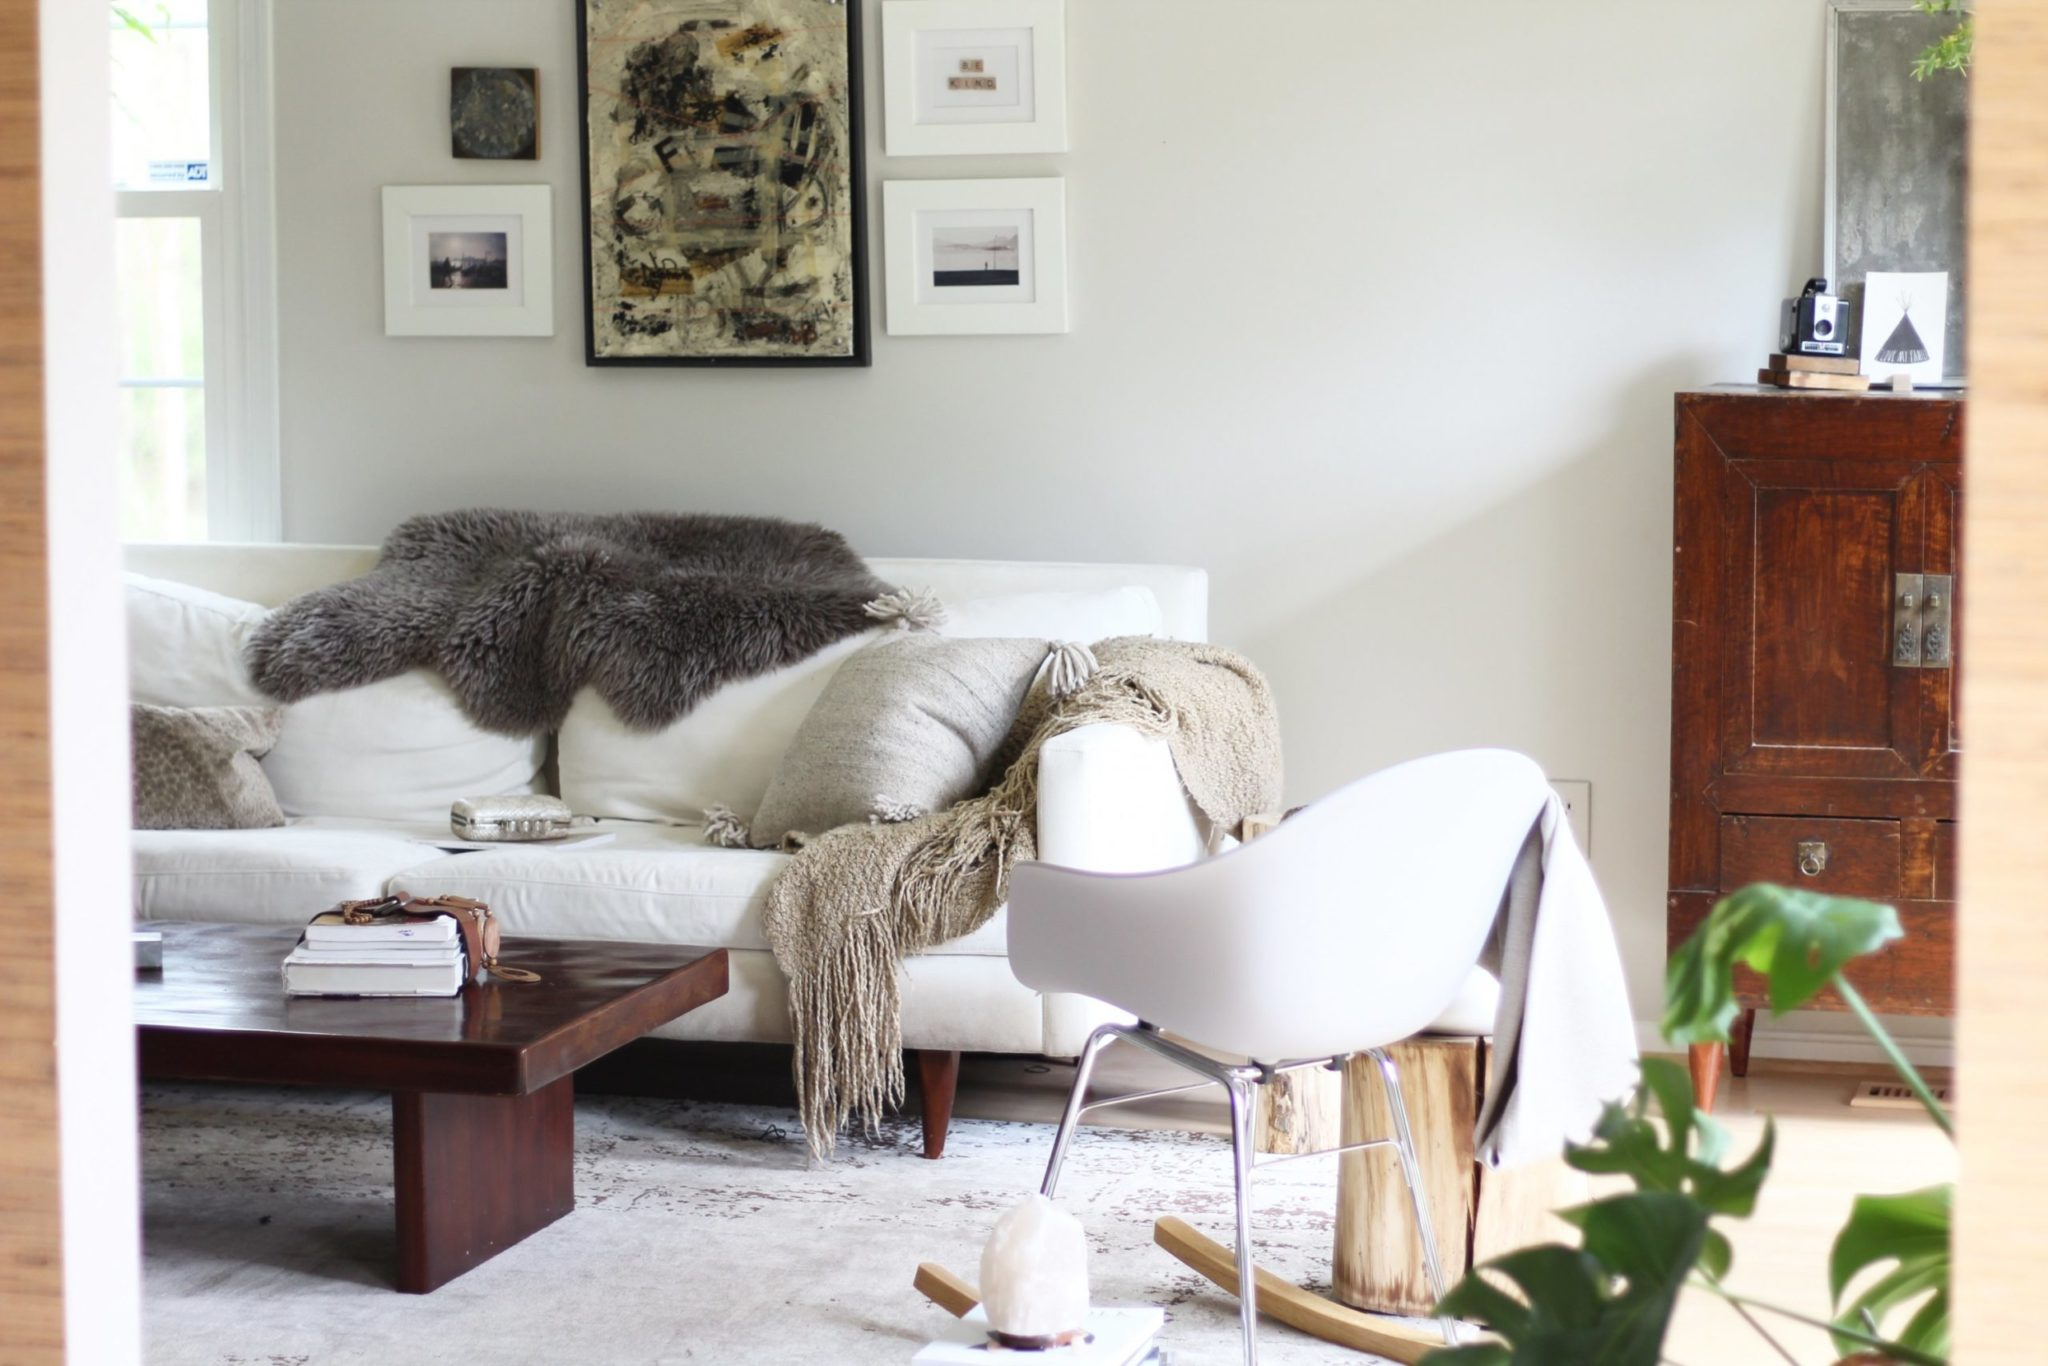 Look Inside My Home: A Boho-Chic Oasis in Great Falls